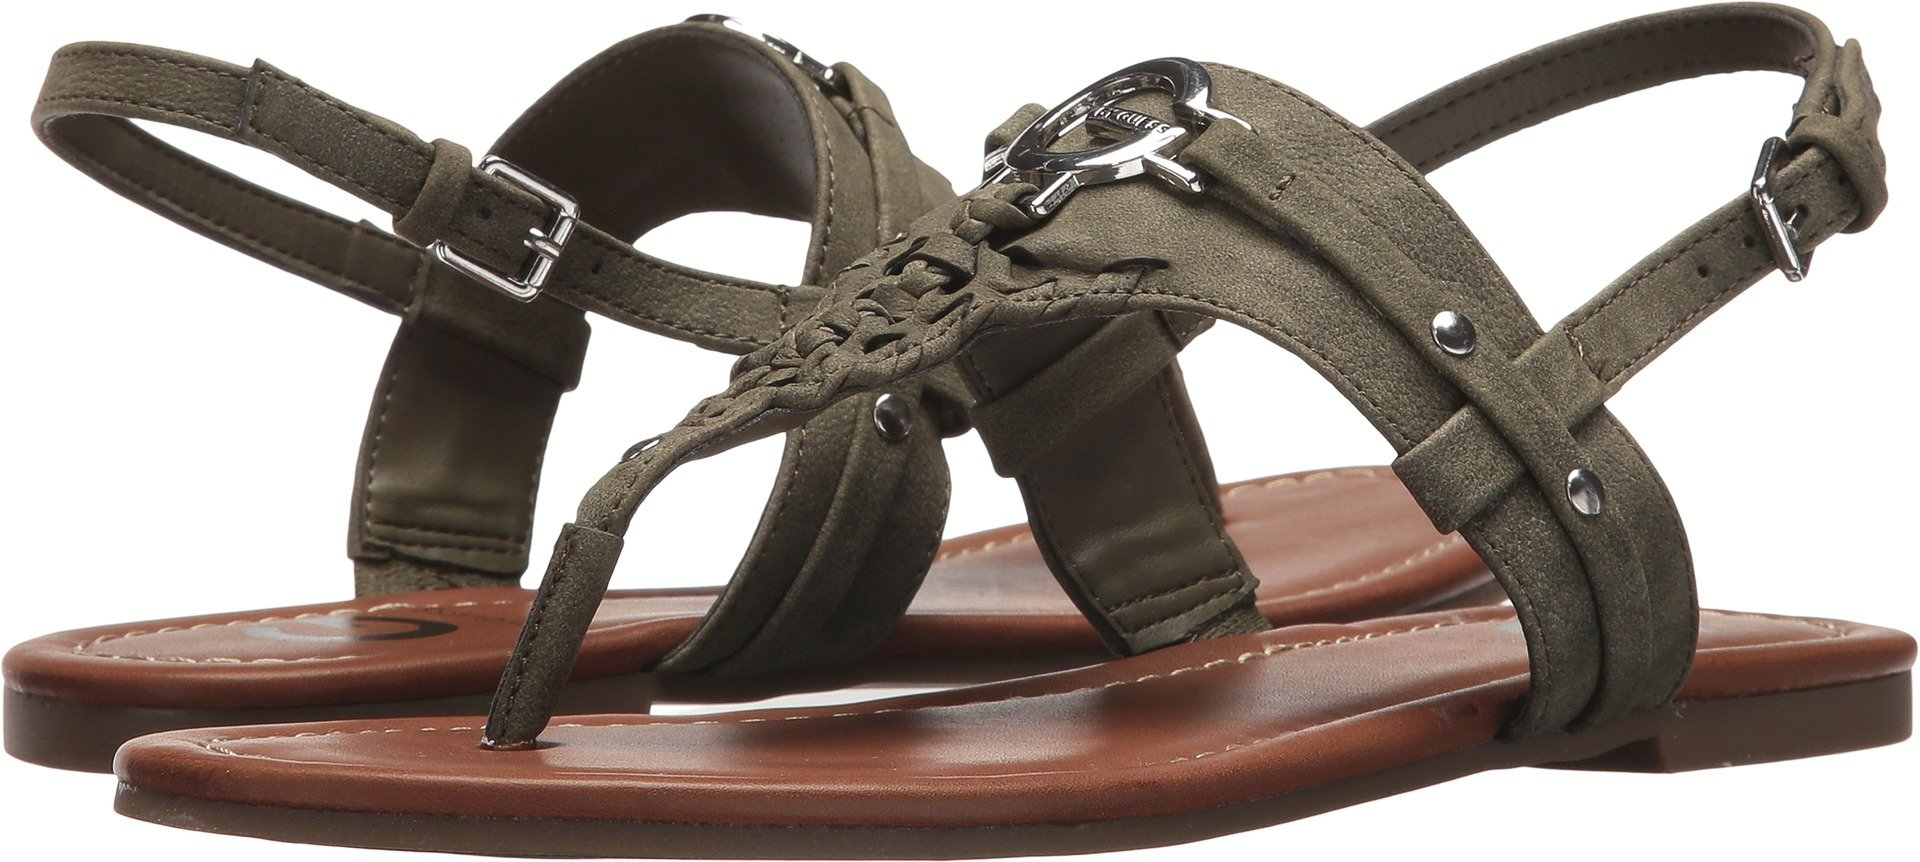 G by GUESS Women's Lemmon Olive 5 M US